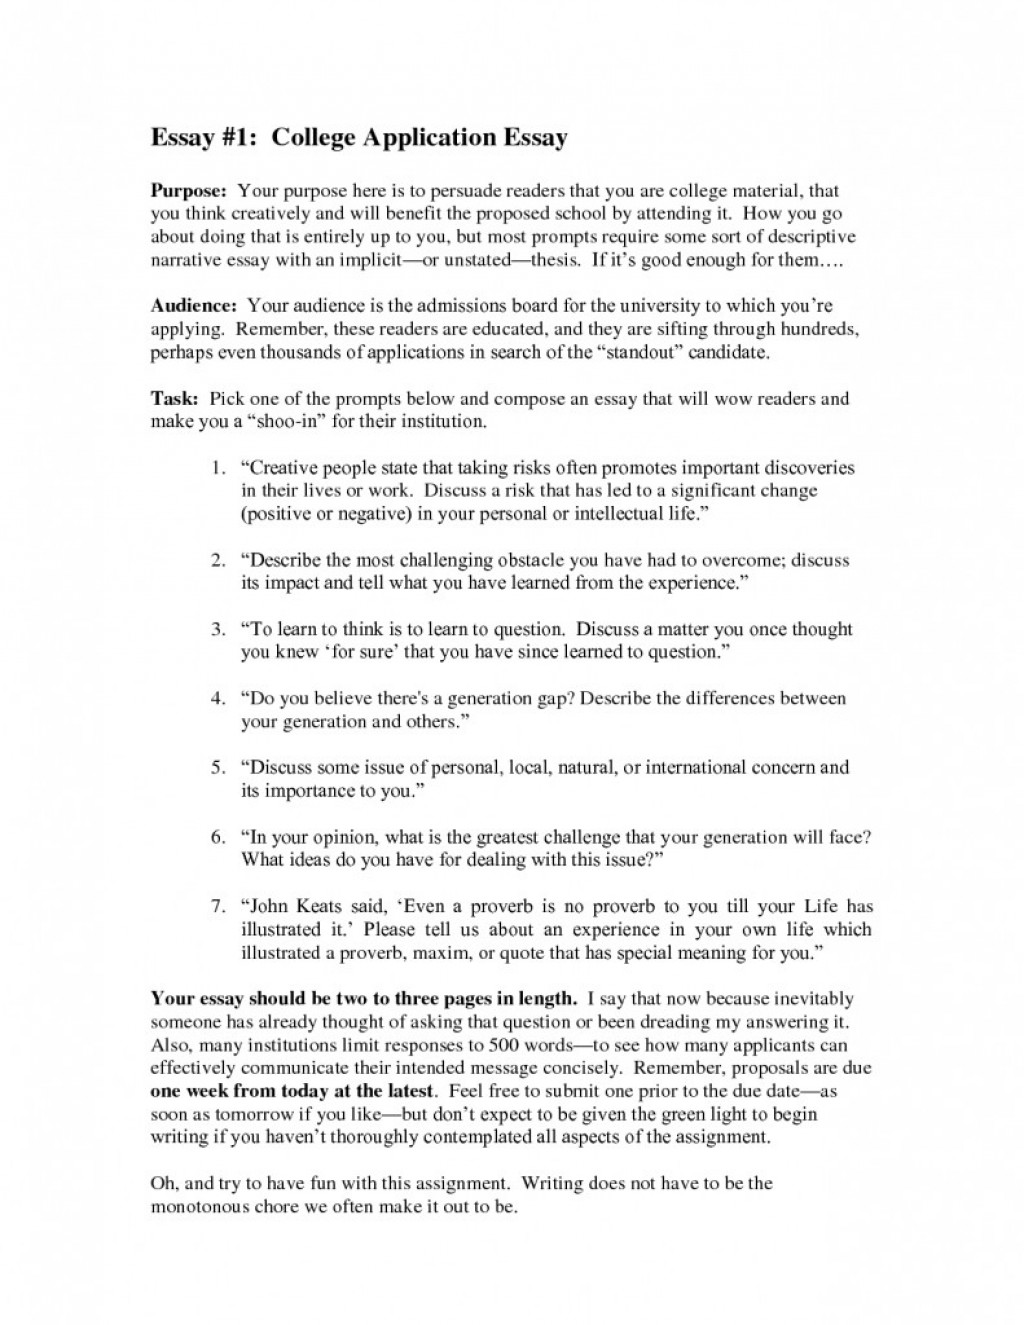 007 College Application Essay 791x1024 What Not To Write About In Frightening Things Your Admissions Large